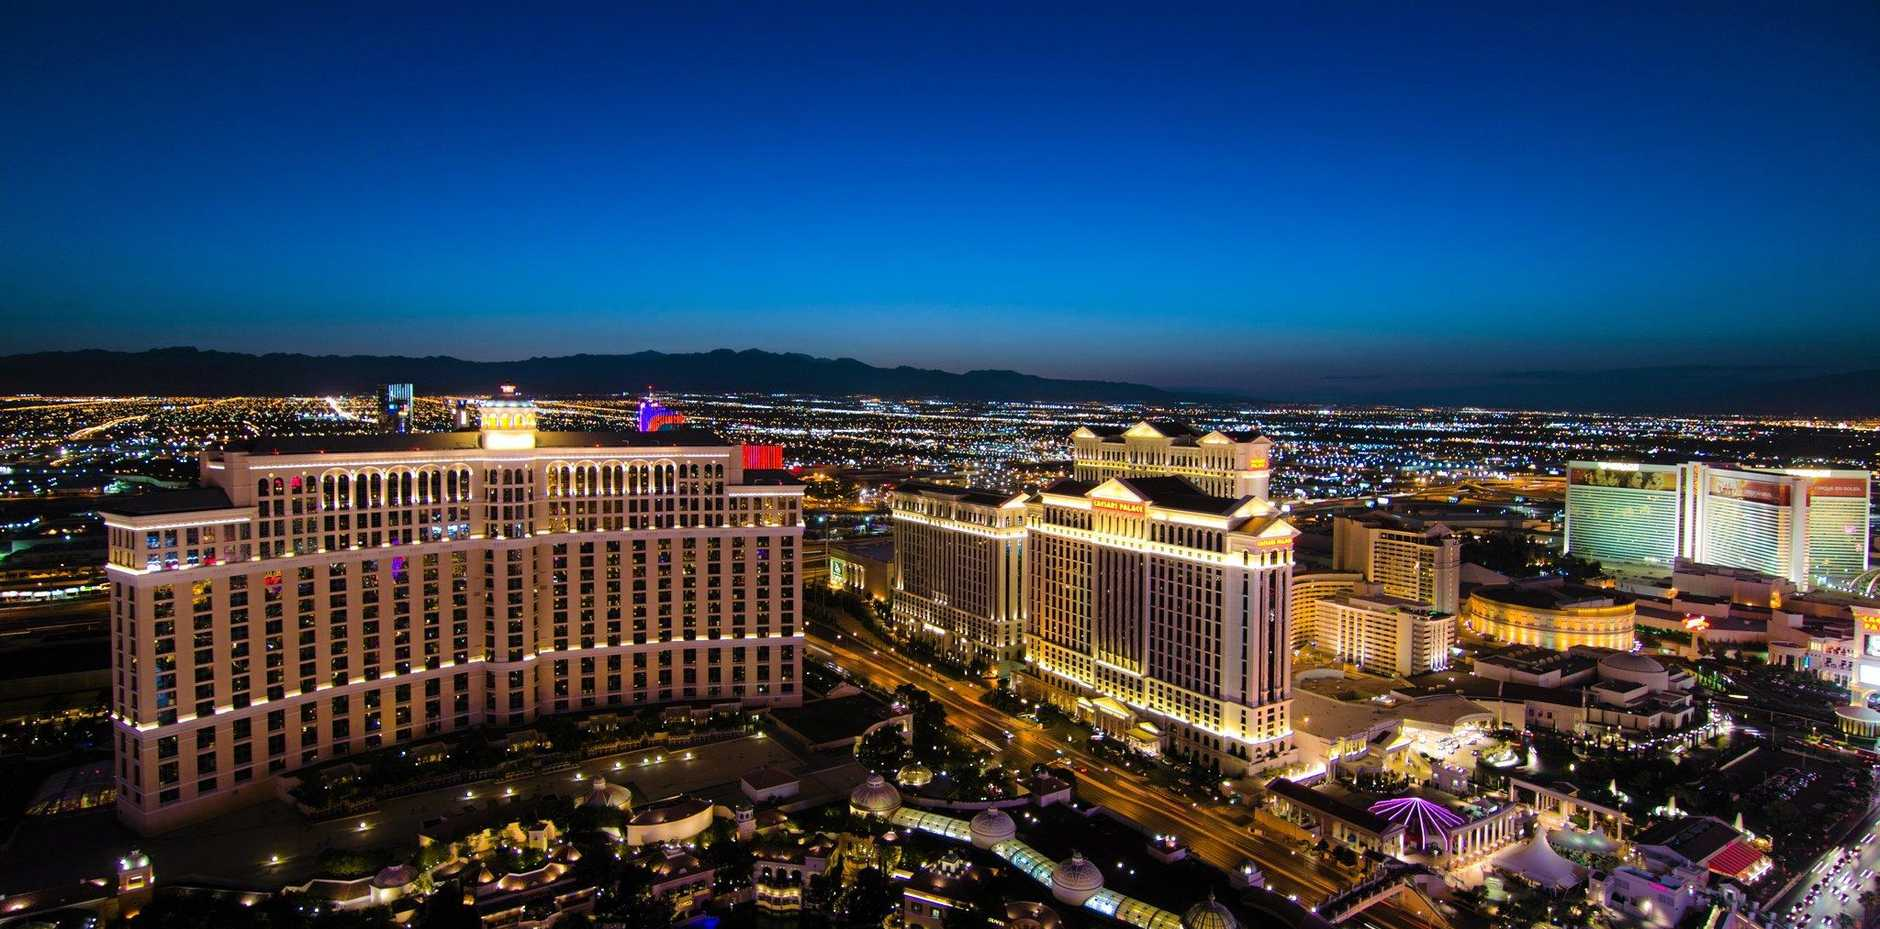 Sin City, City of Lights, Entertainment Capital of the World ... Las Vegas has earned all of its nicknames.